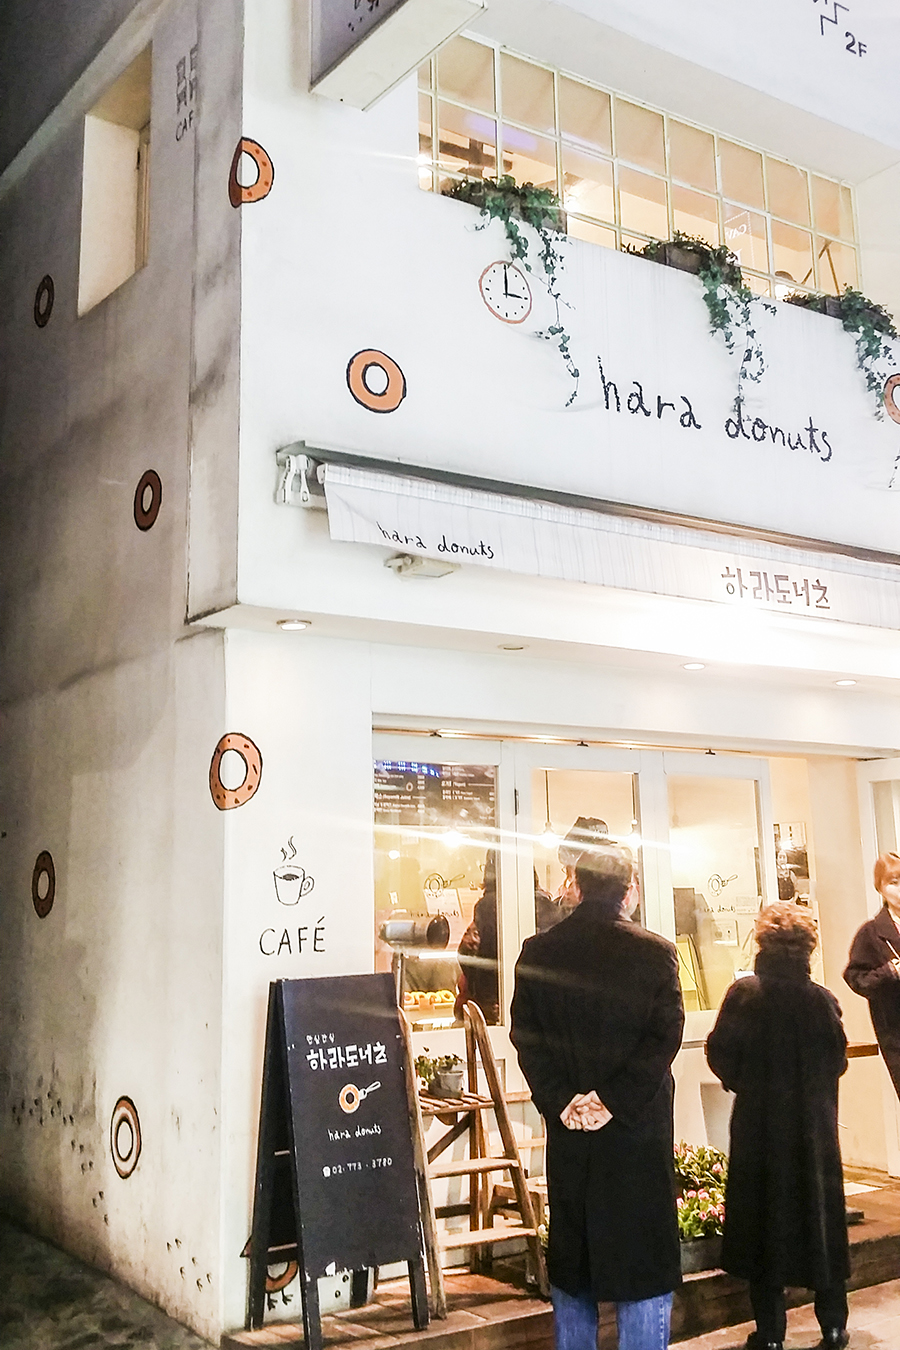 Cute exterior of Hard Donuts, a cafe in Myeongdong, Seoul, South Korea.